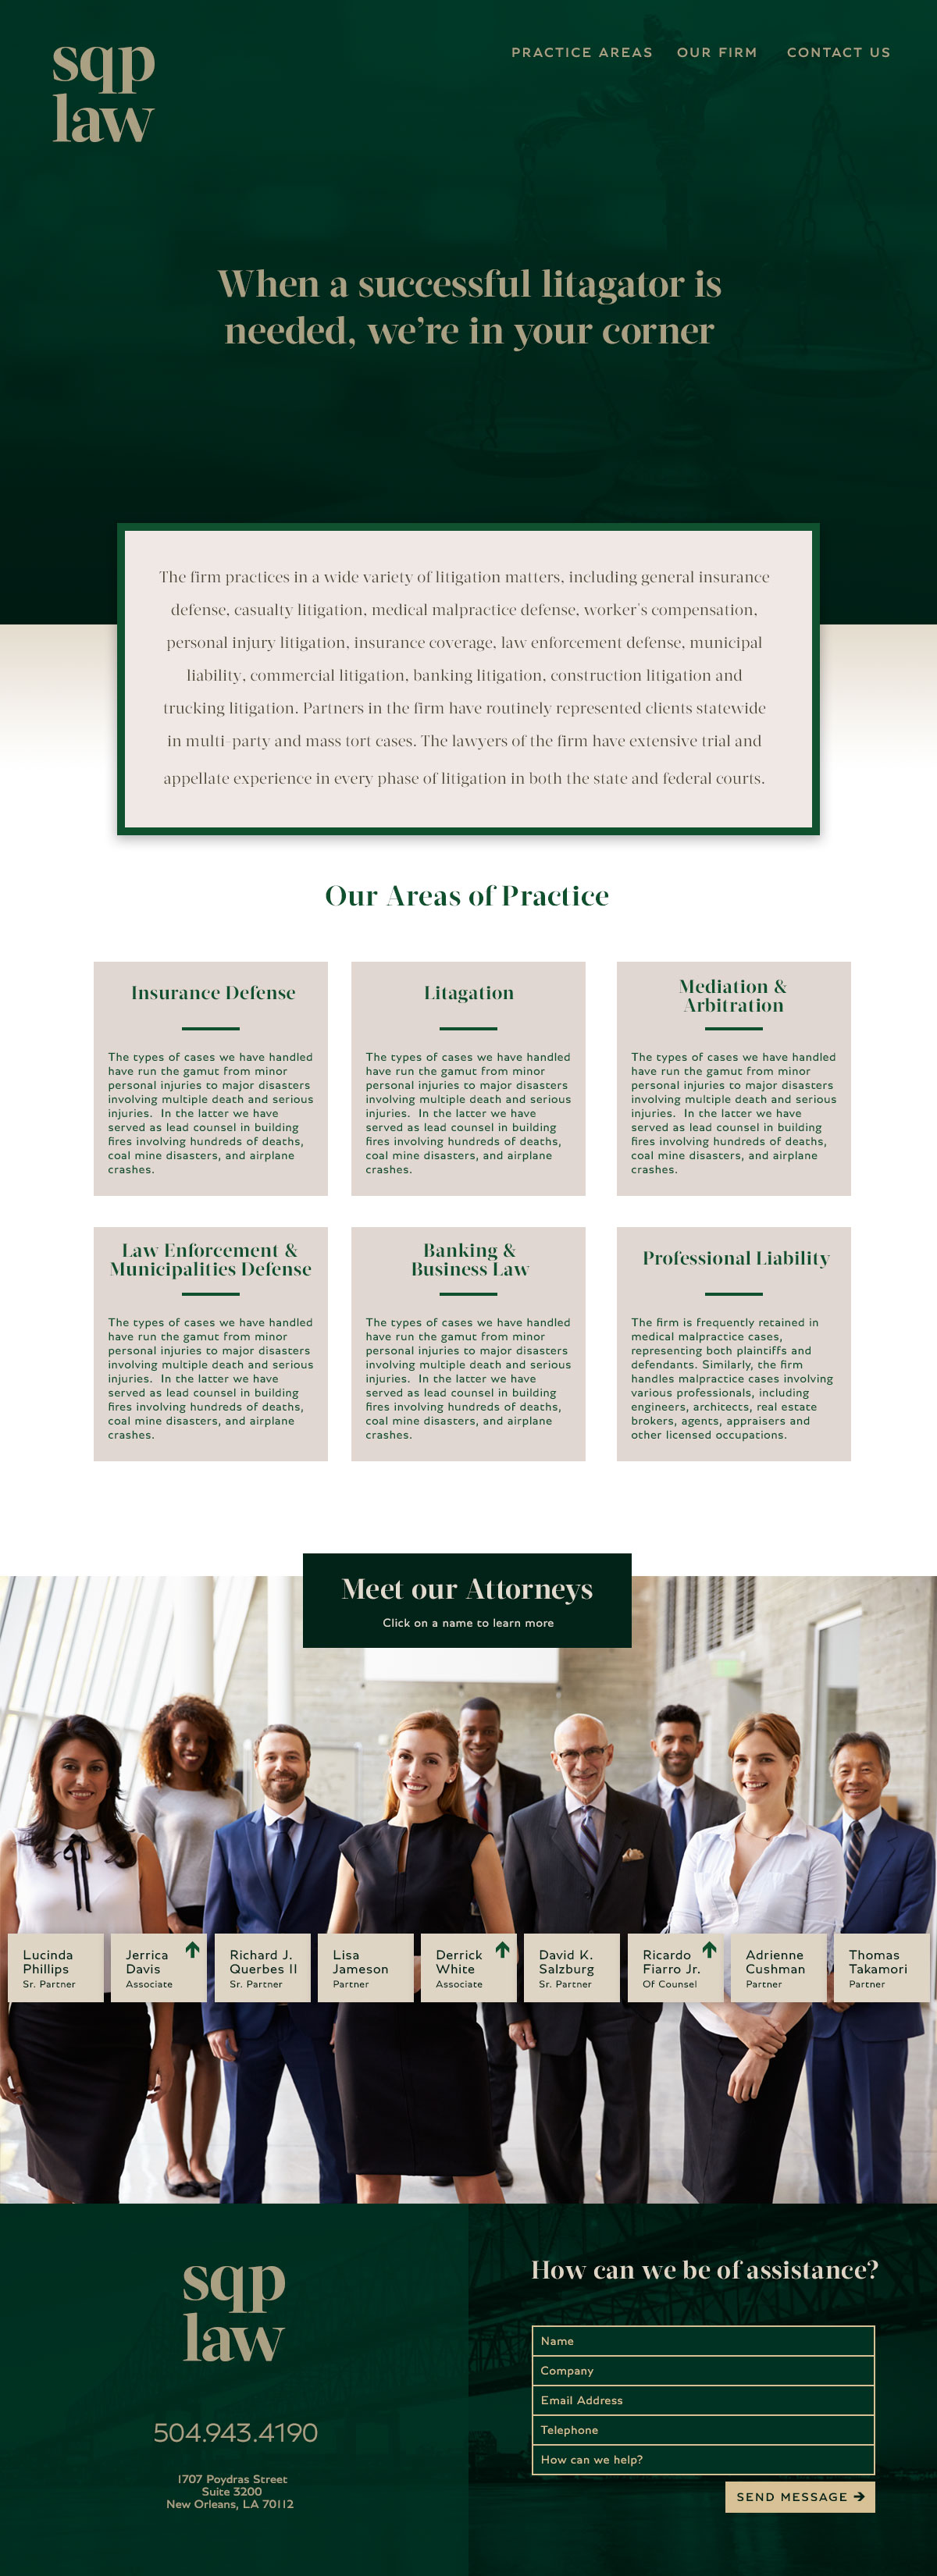 Law Firm Web Site Design